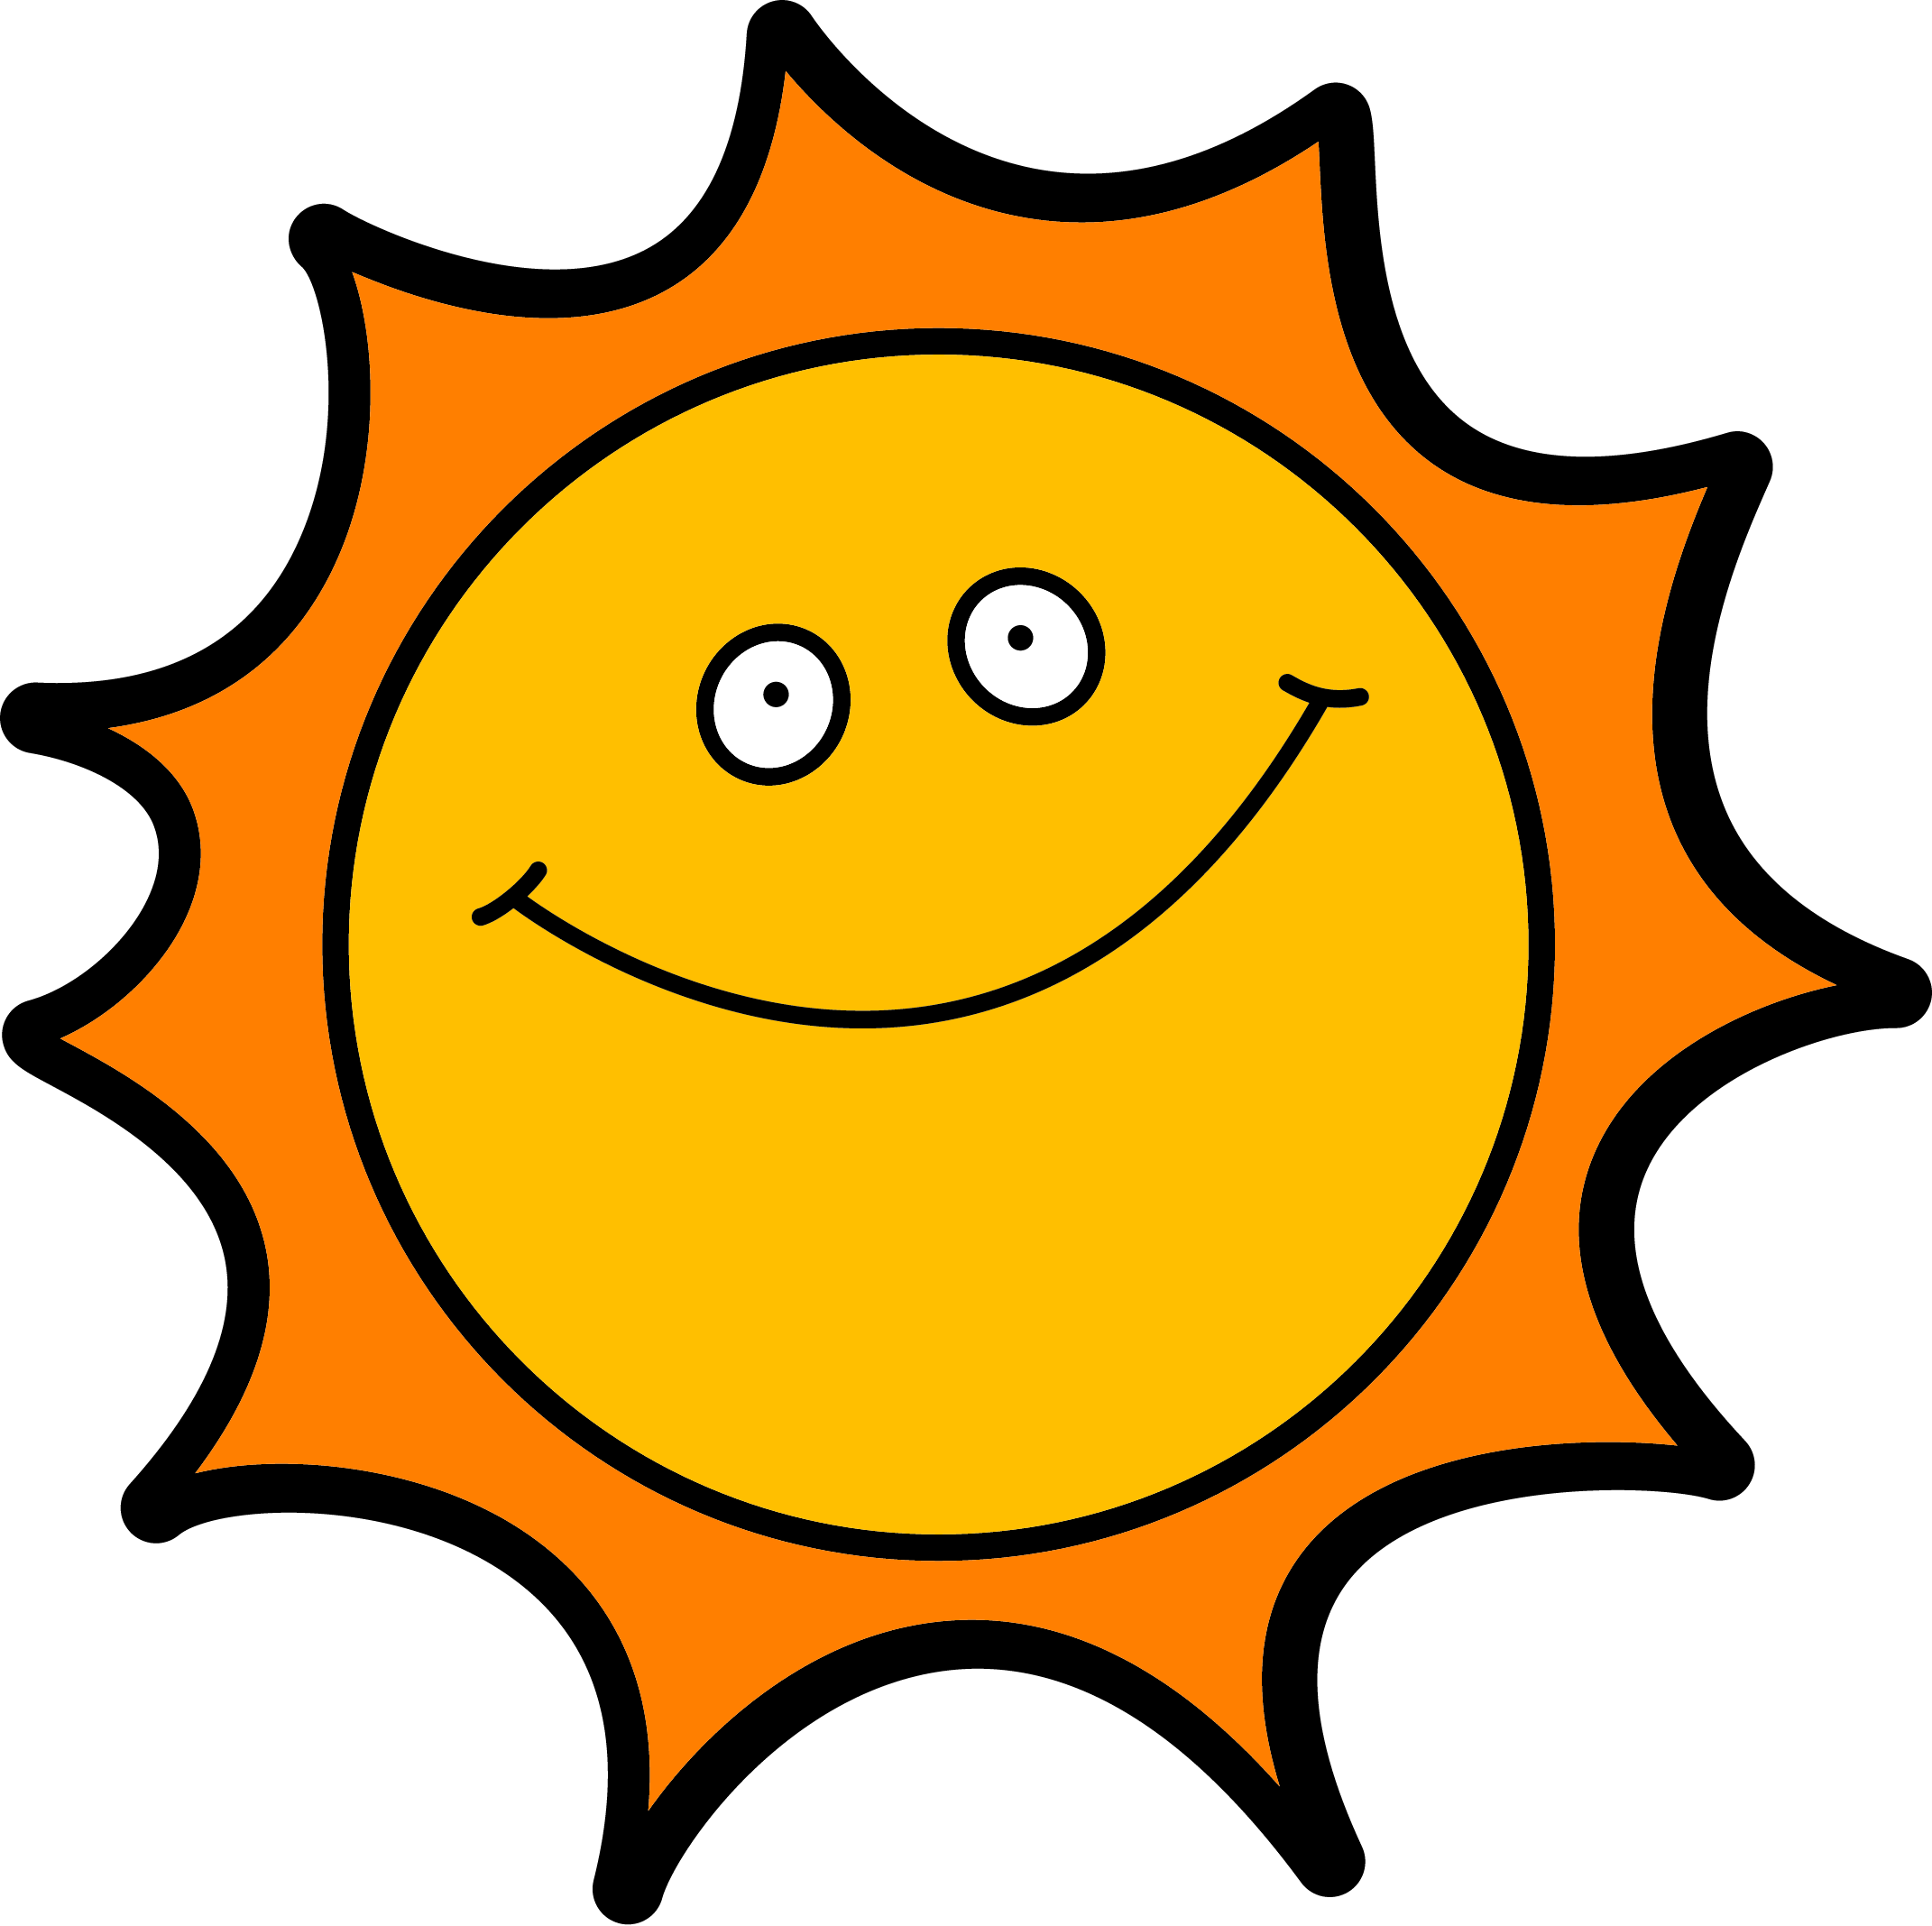 Sunshine free sun clipart public domain sun clip art for Free clipart no copyright